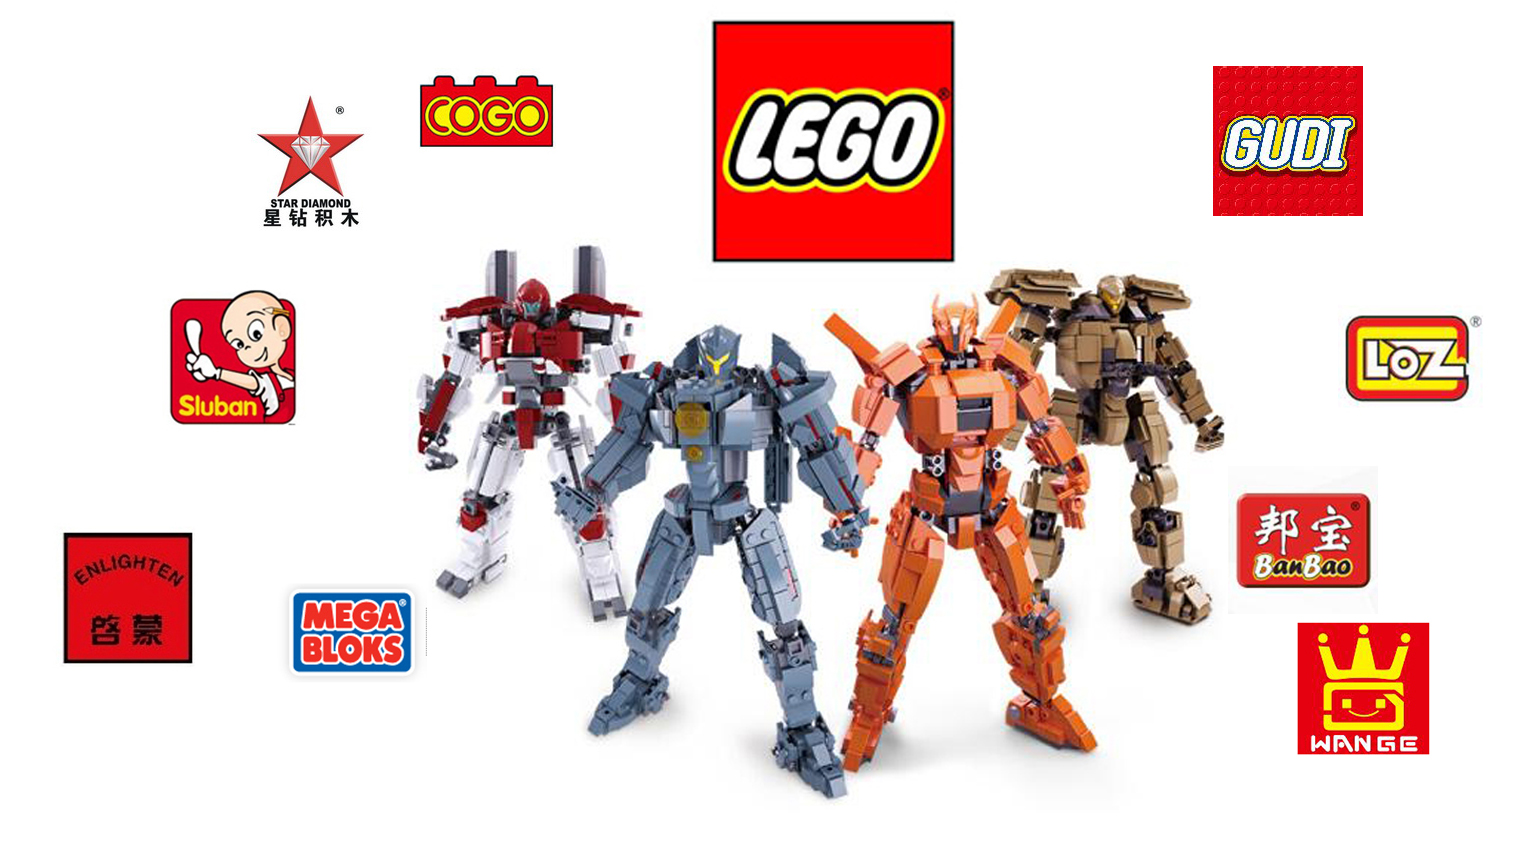 11 Top Building Brick Toys Brand- No Only LEGO